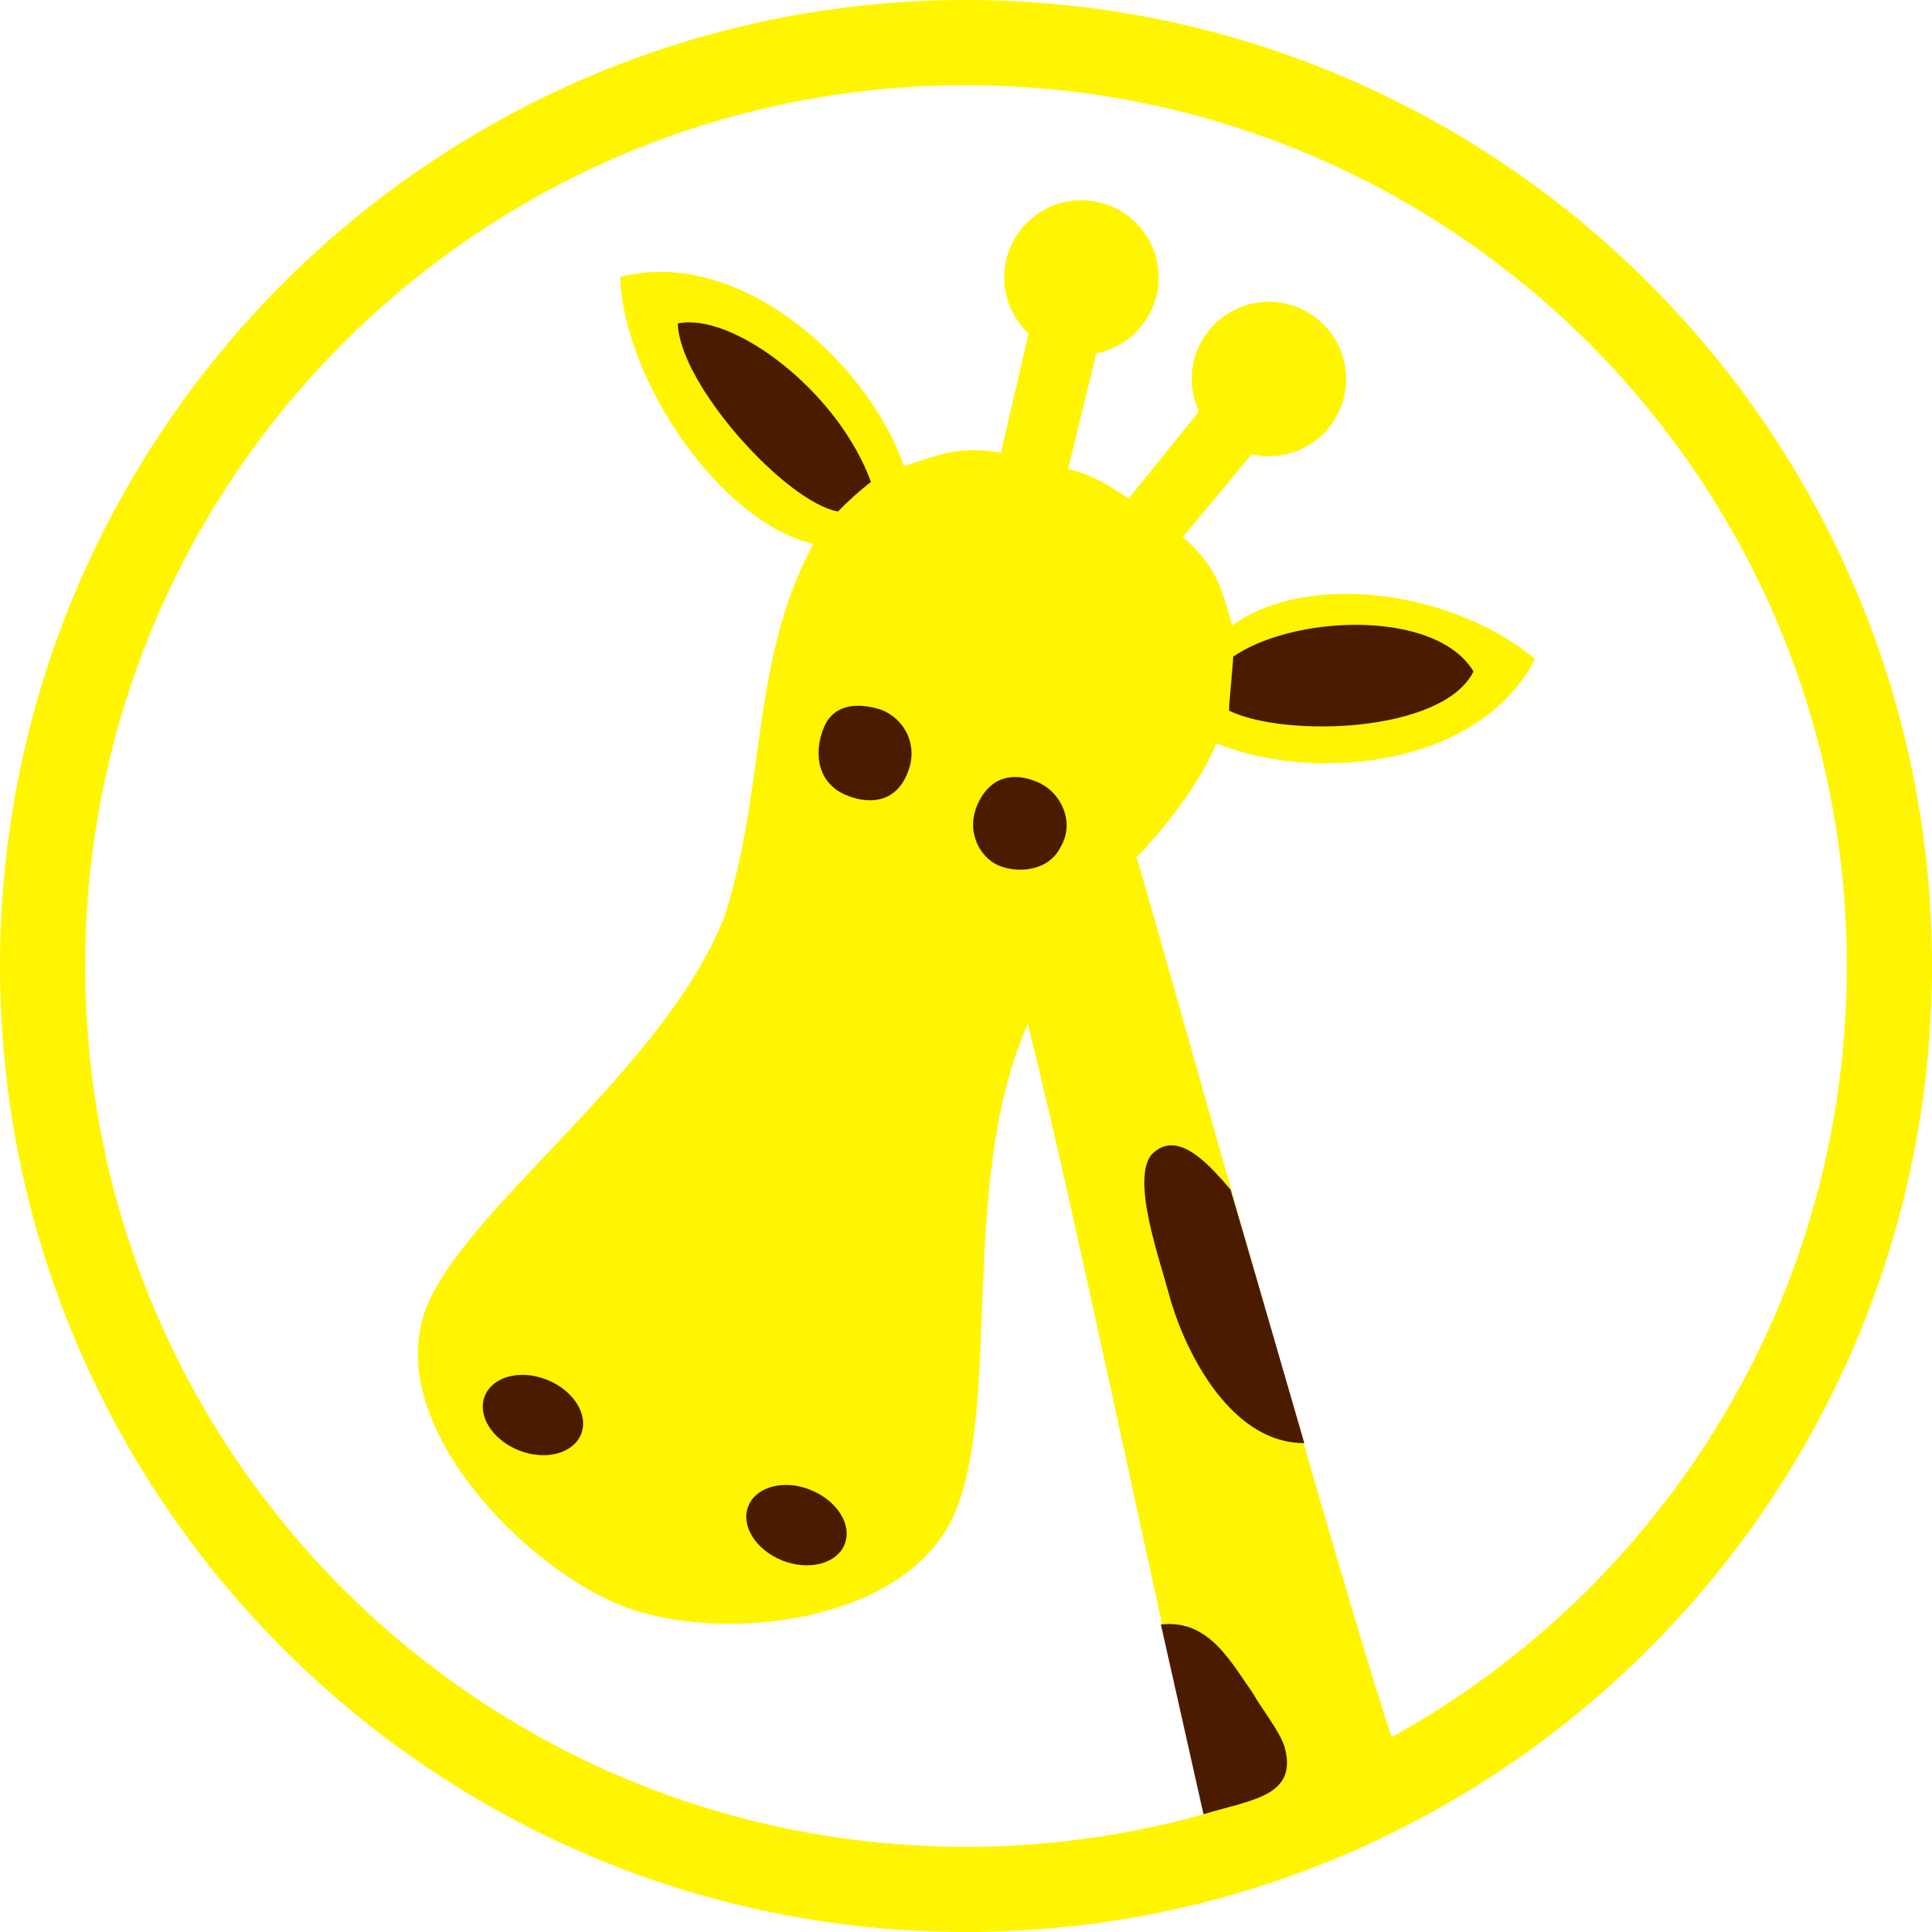 giraffe head by Martouf